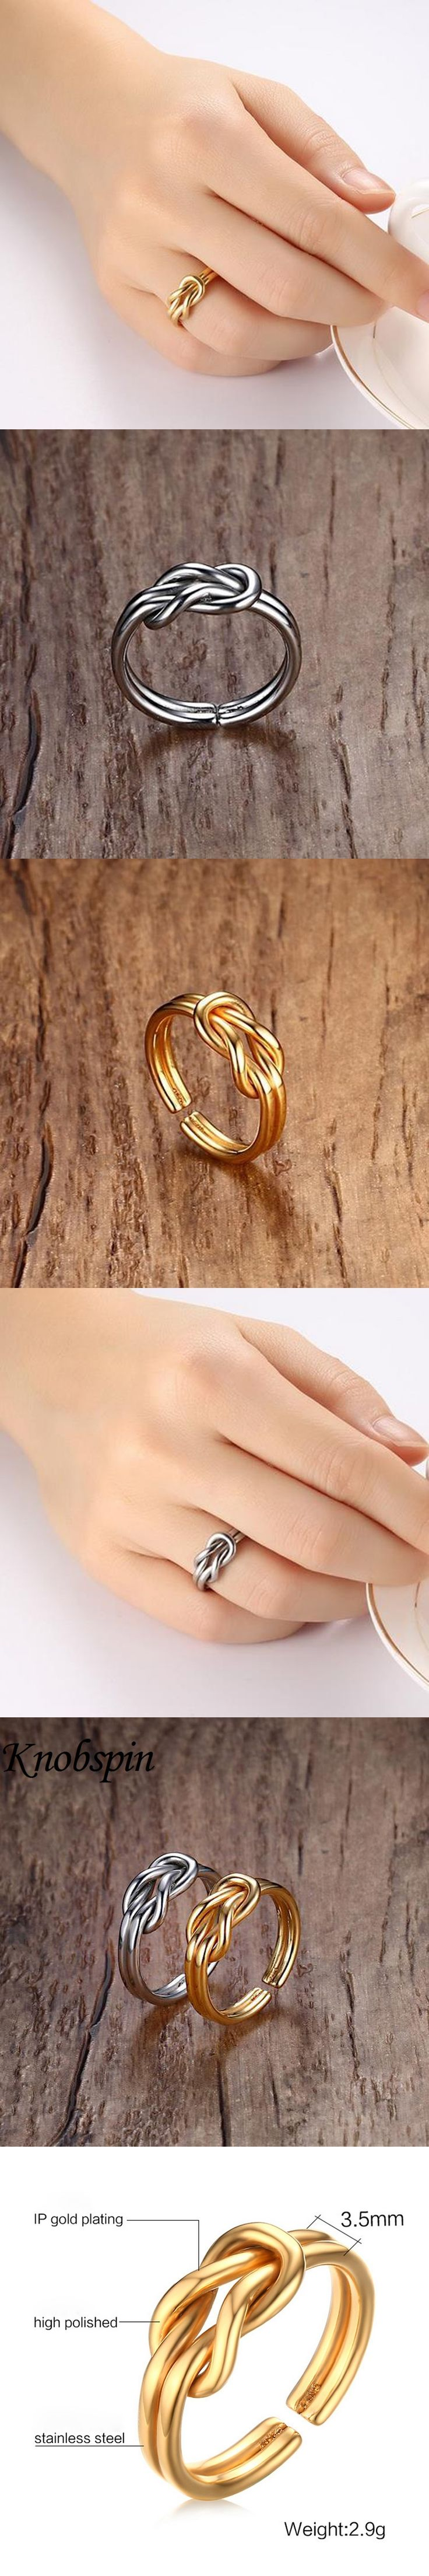 Gold color Bowknot Ring Simple bague femme 316L Stainless Steel women Jewelry Wedding Rings High quality Titanium jewelry